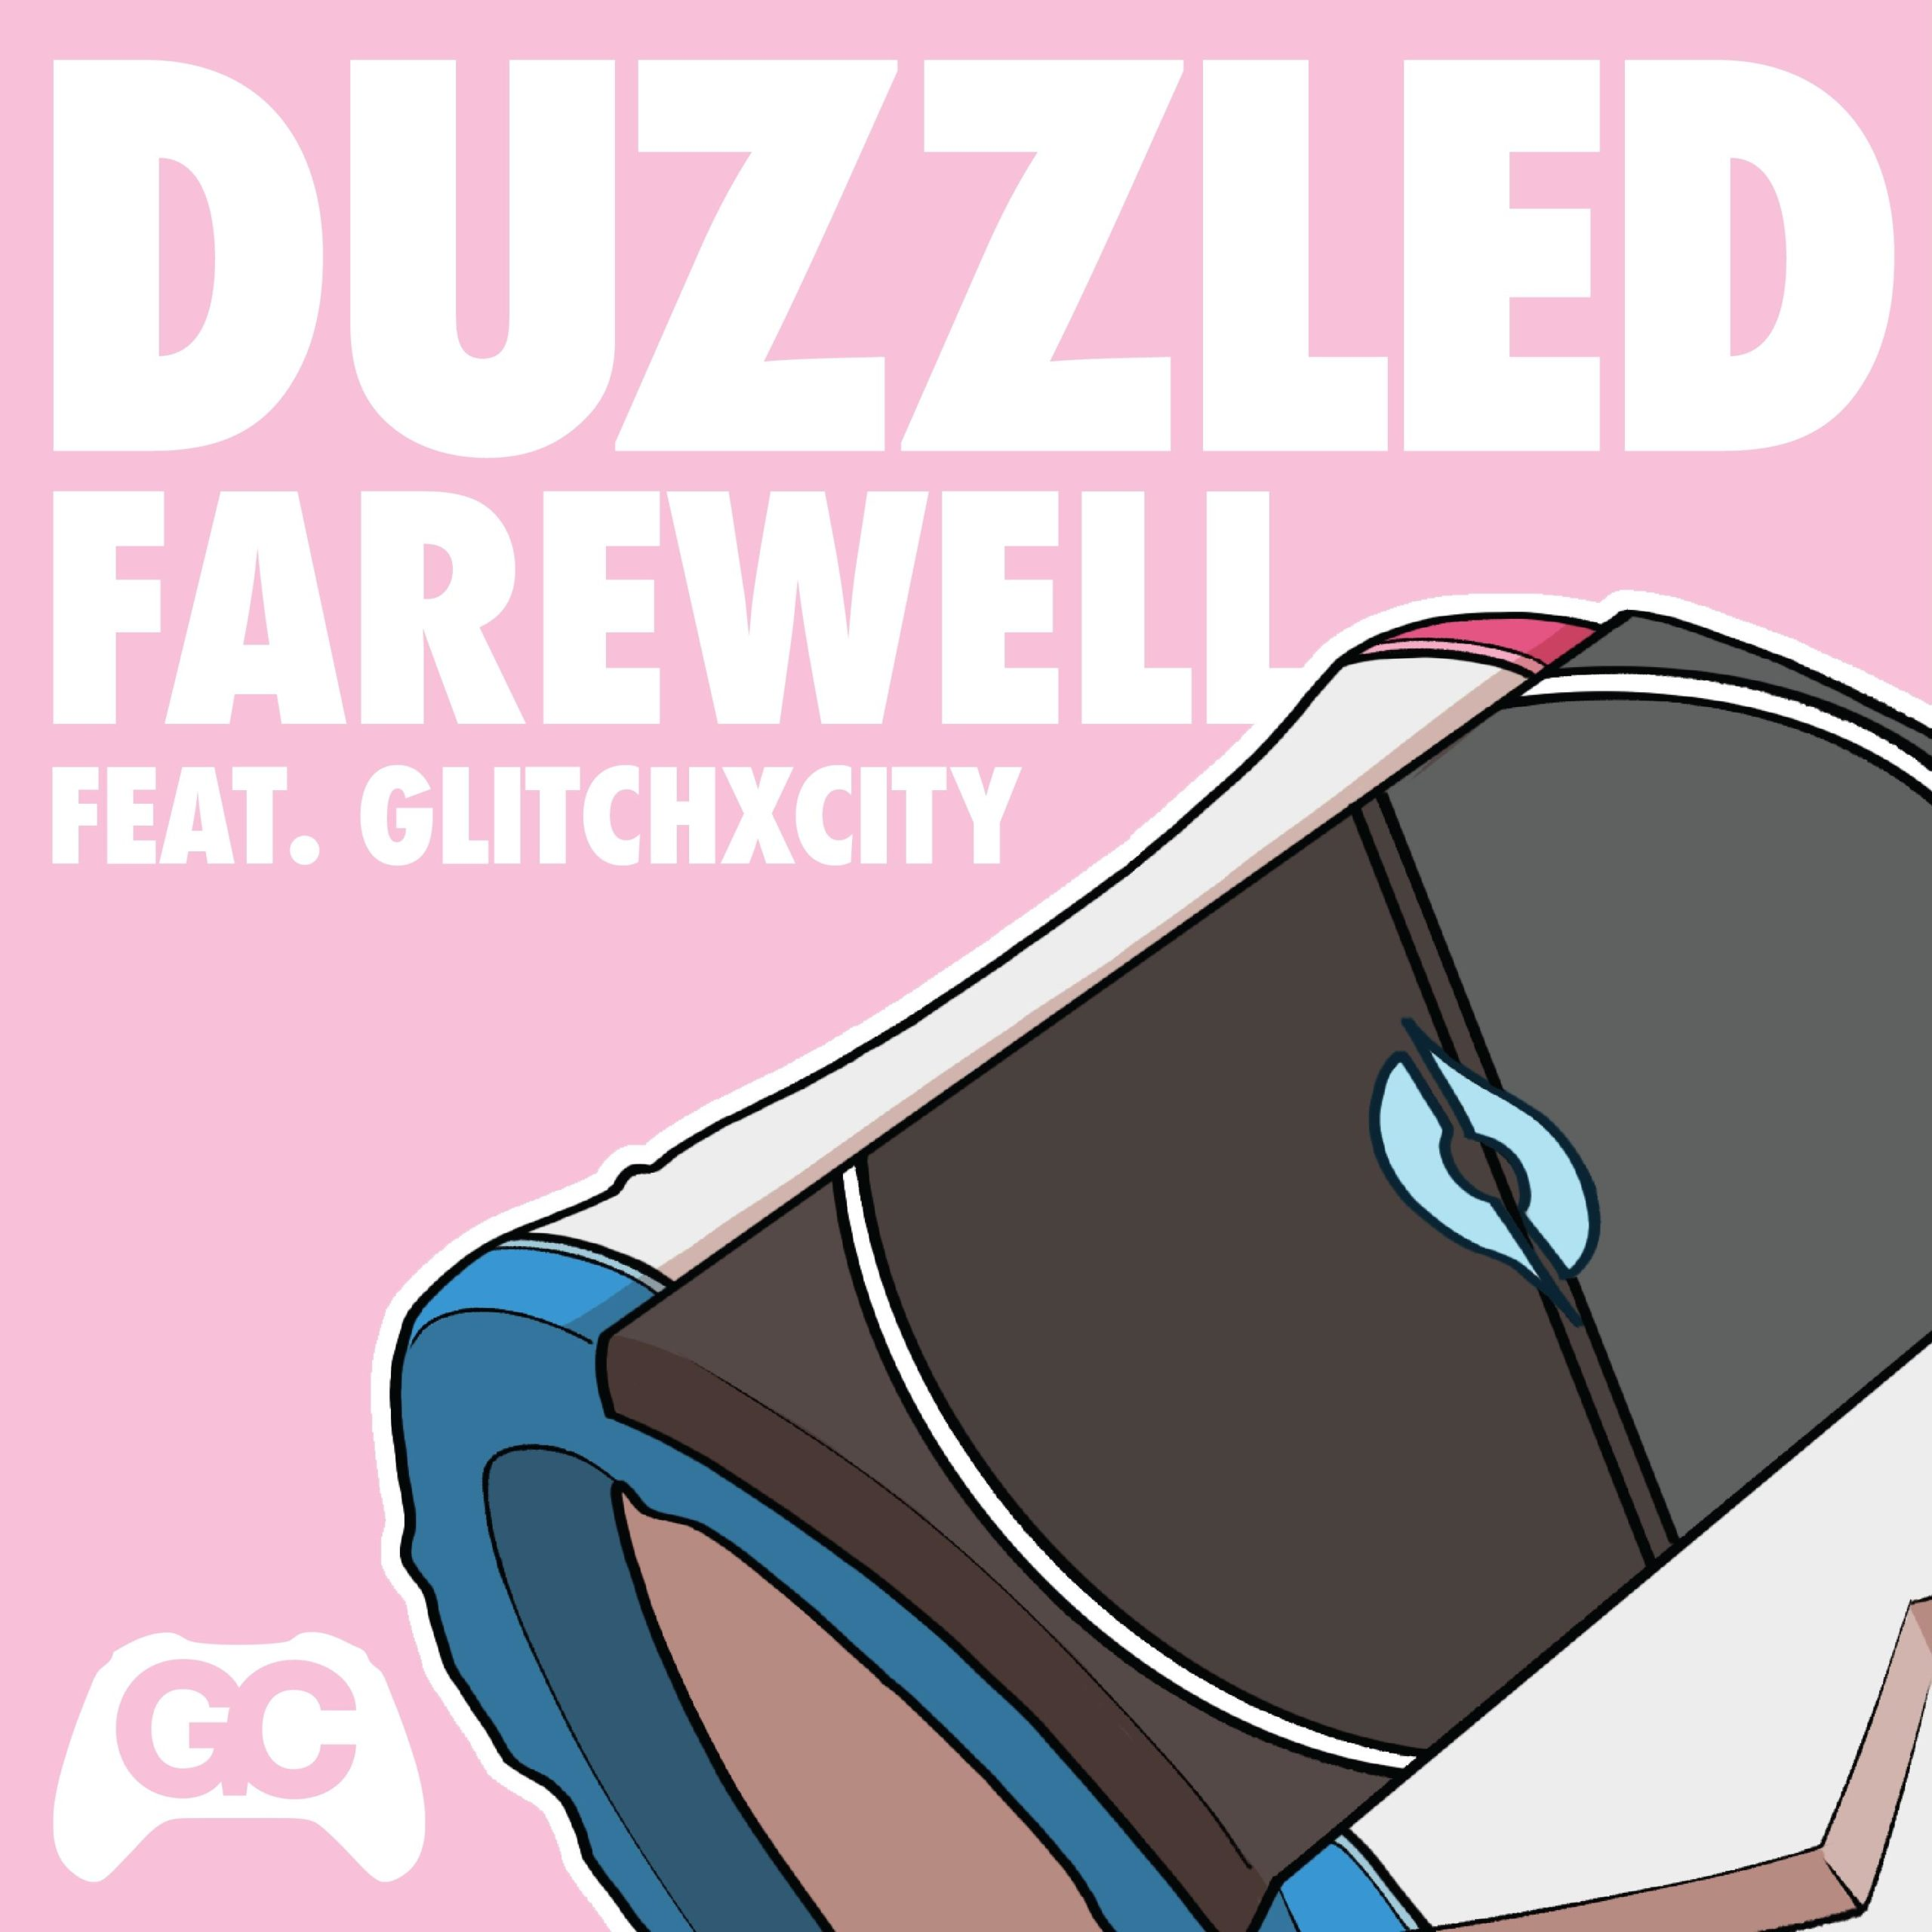 Farewell – Duzzled ft. GlitchxCity